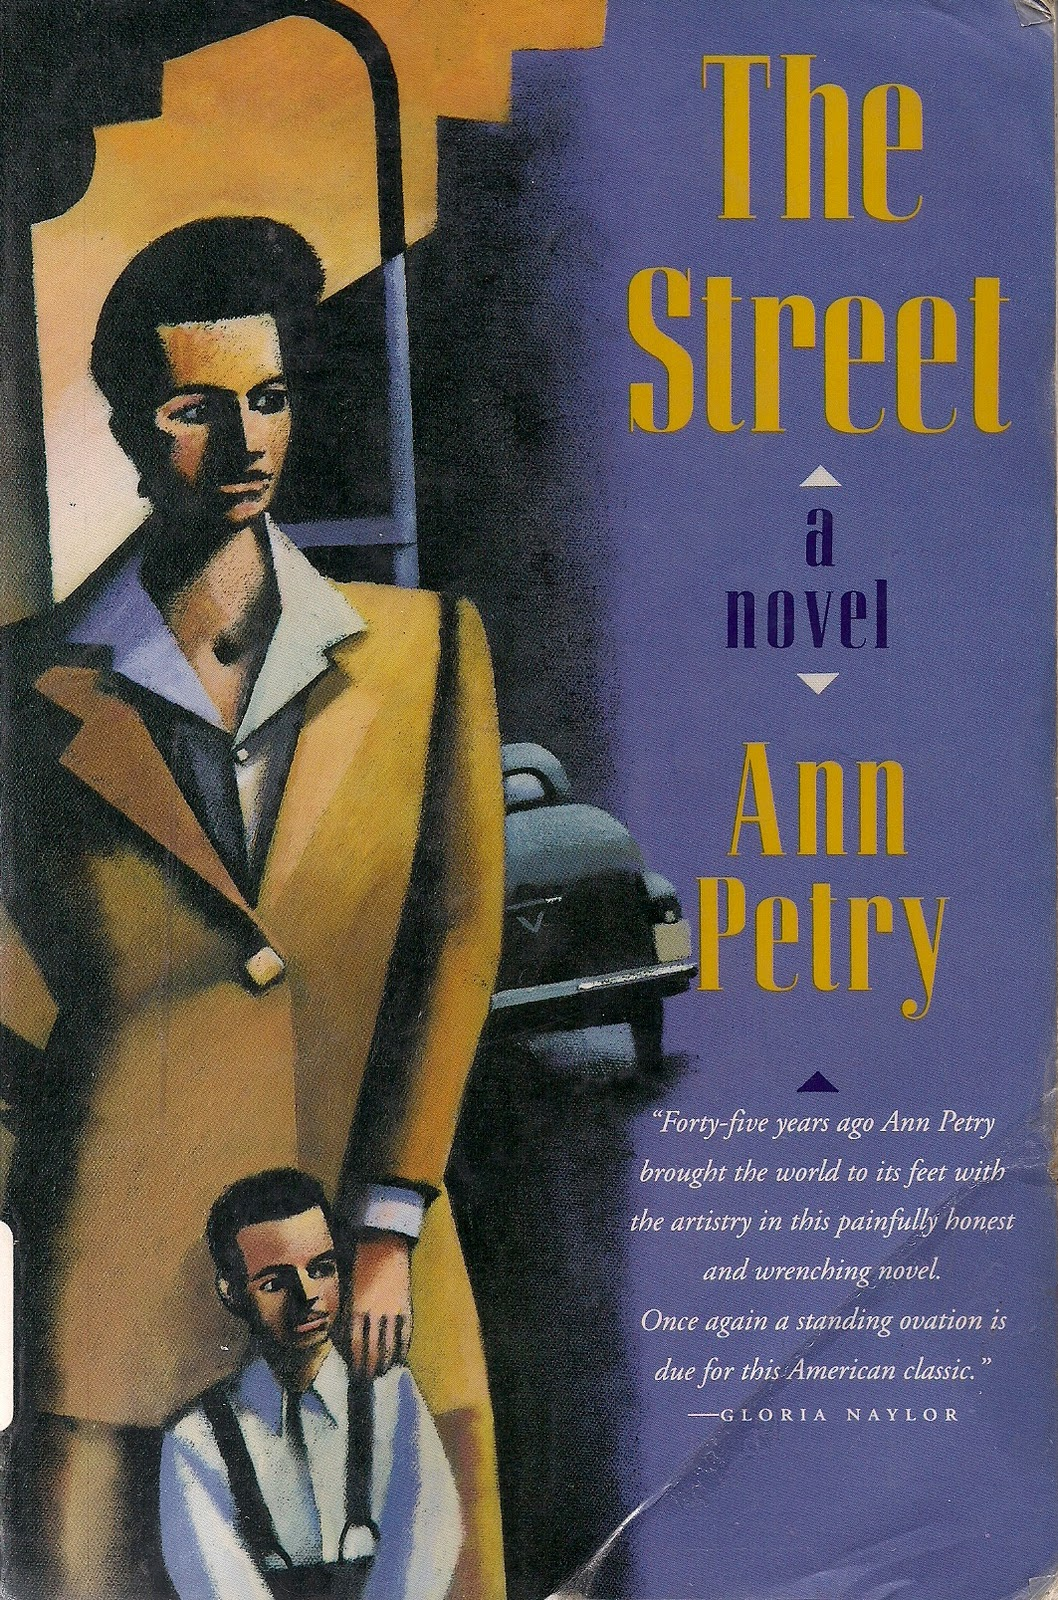 an analysis of the street by ann petry lutie and her son bub Lutie johnson, the main character, is an african american single mother who is trying her best to provide for herself and her son bub—only to be faced with economic constraints due to her.